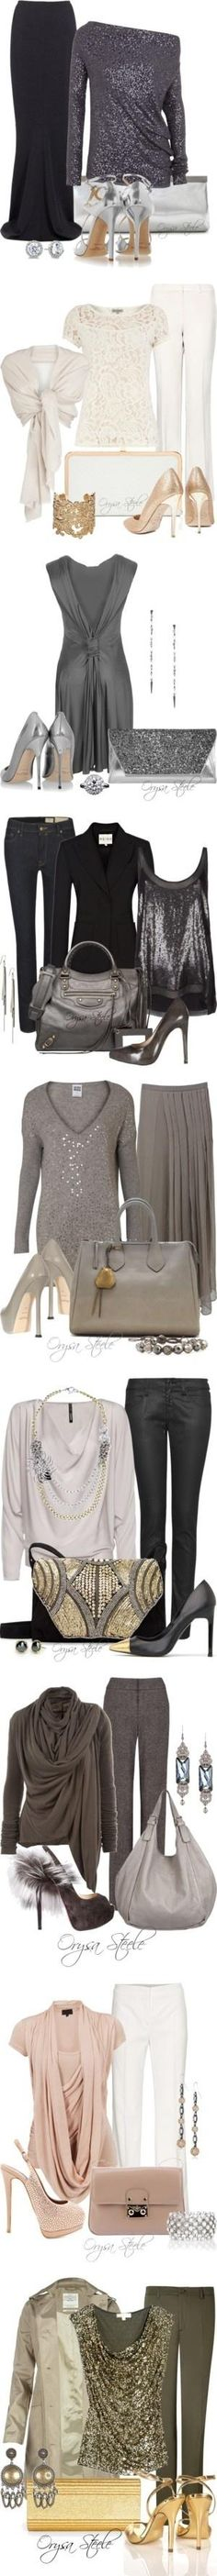 """""""The Holiday Collection"""" by orysa on Polyvore by babegotback"""